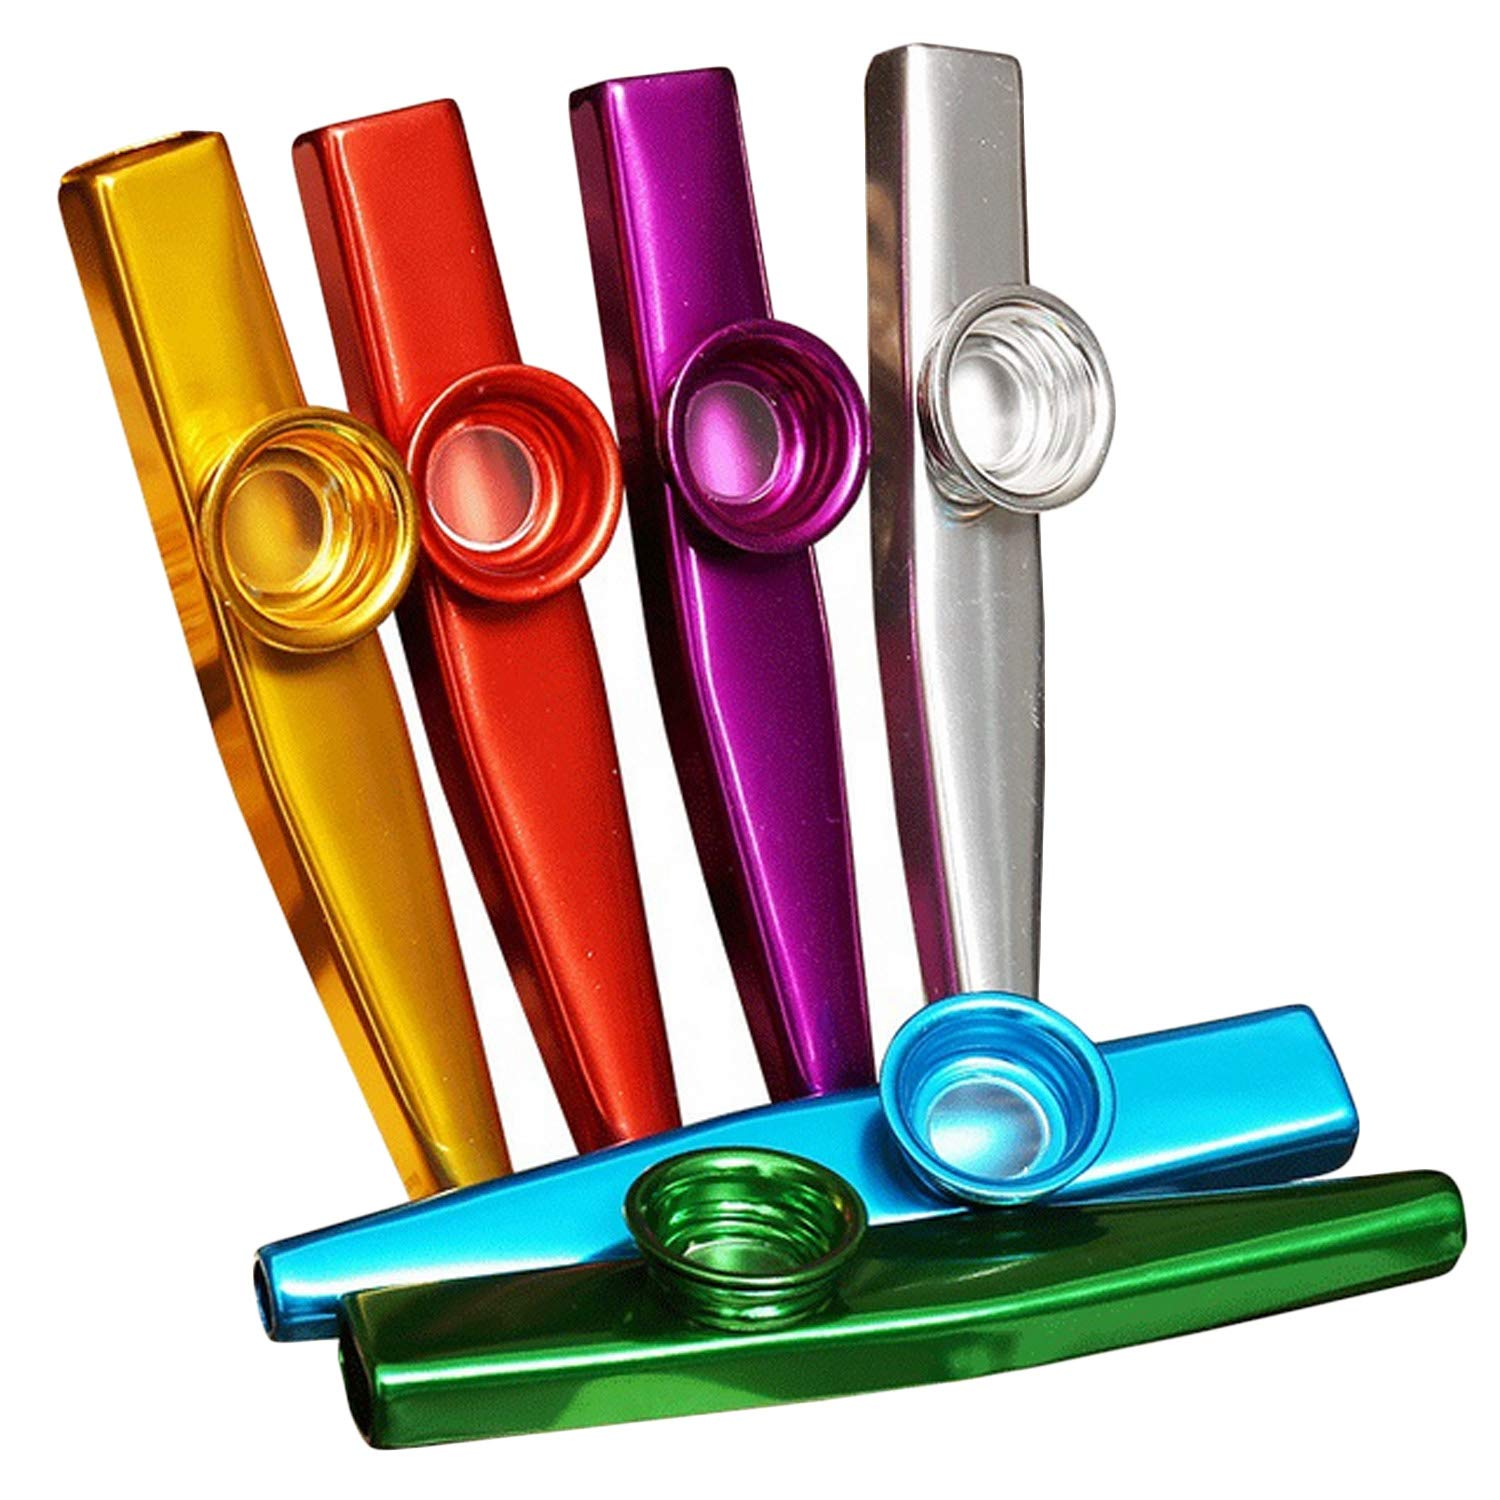 6pcs Mini Colorful Metal Kazoo for Acoustic Instrument Guitar Ukulele Violin Piano Companion Performance Child Toys Gifts Early Learning Migavan M433180028